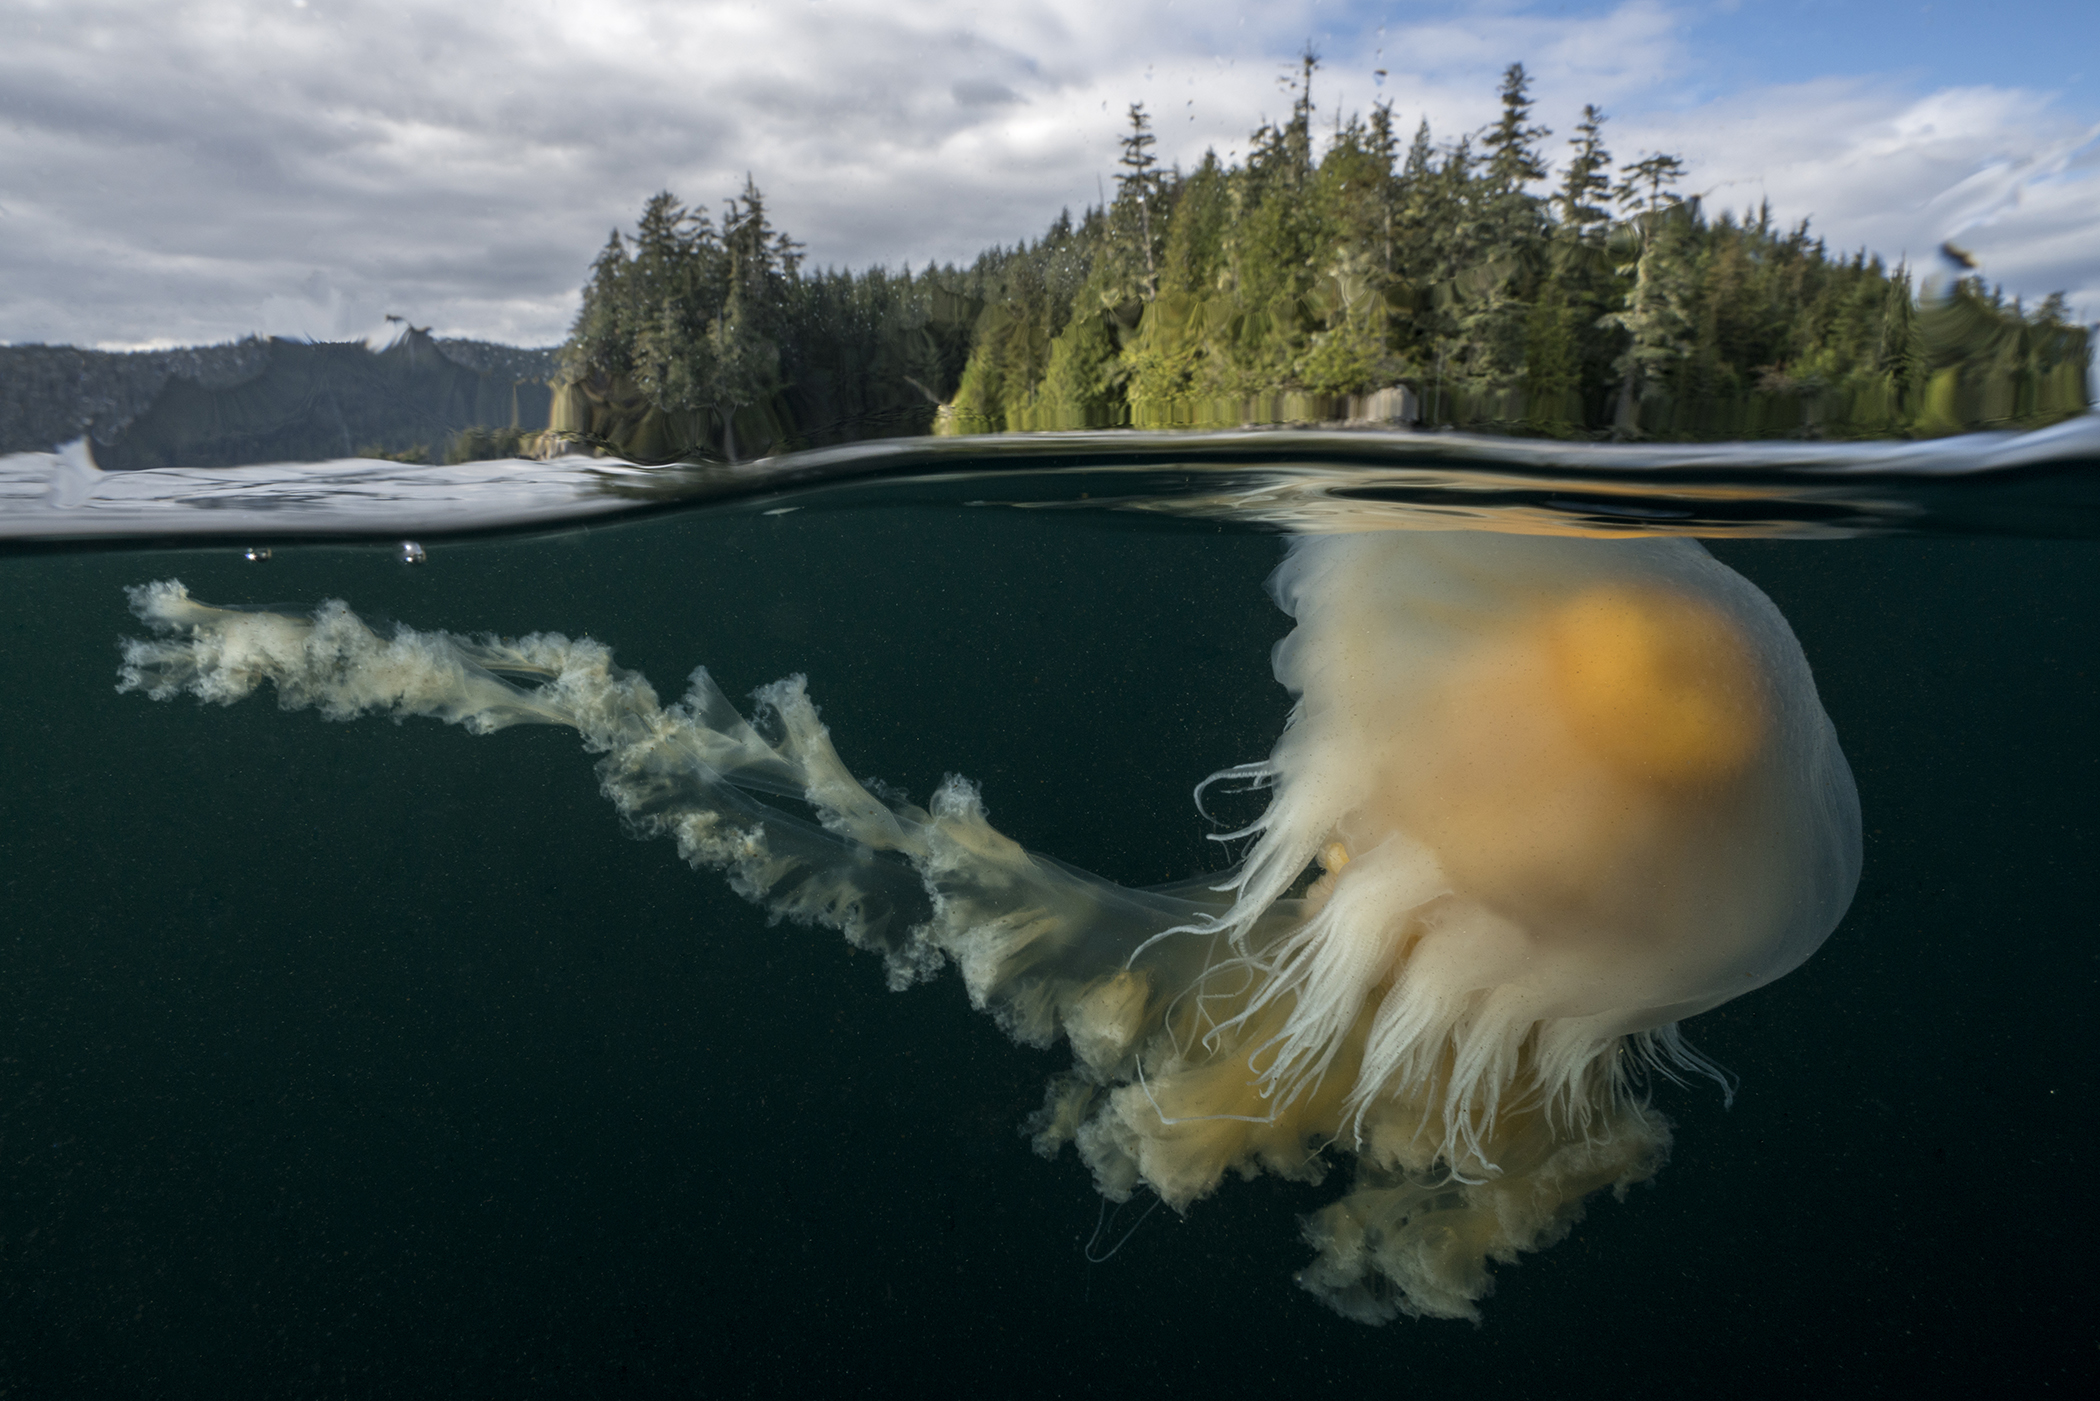 A jellyfish pictured in the Salish Sea, off the coast of British Columbia.